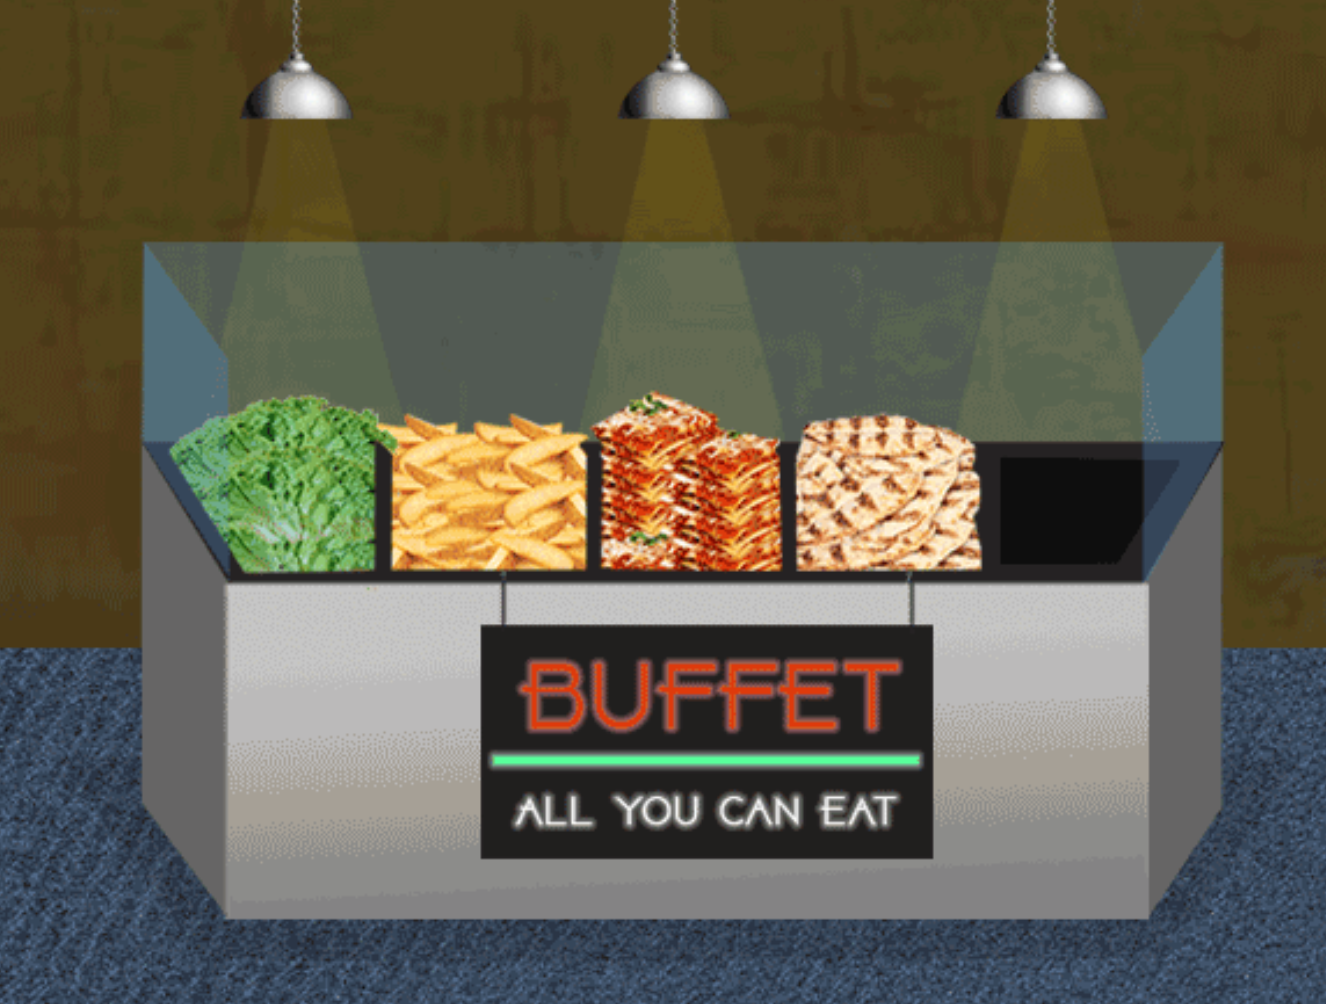 A Serious Investigation Of How To 'Out-Eat' An All-You-Can-Eat Buffet